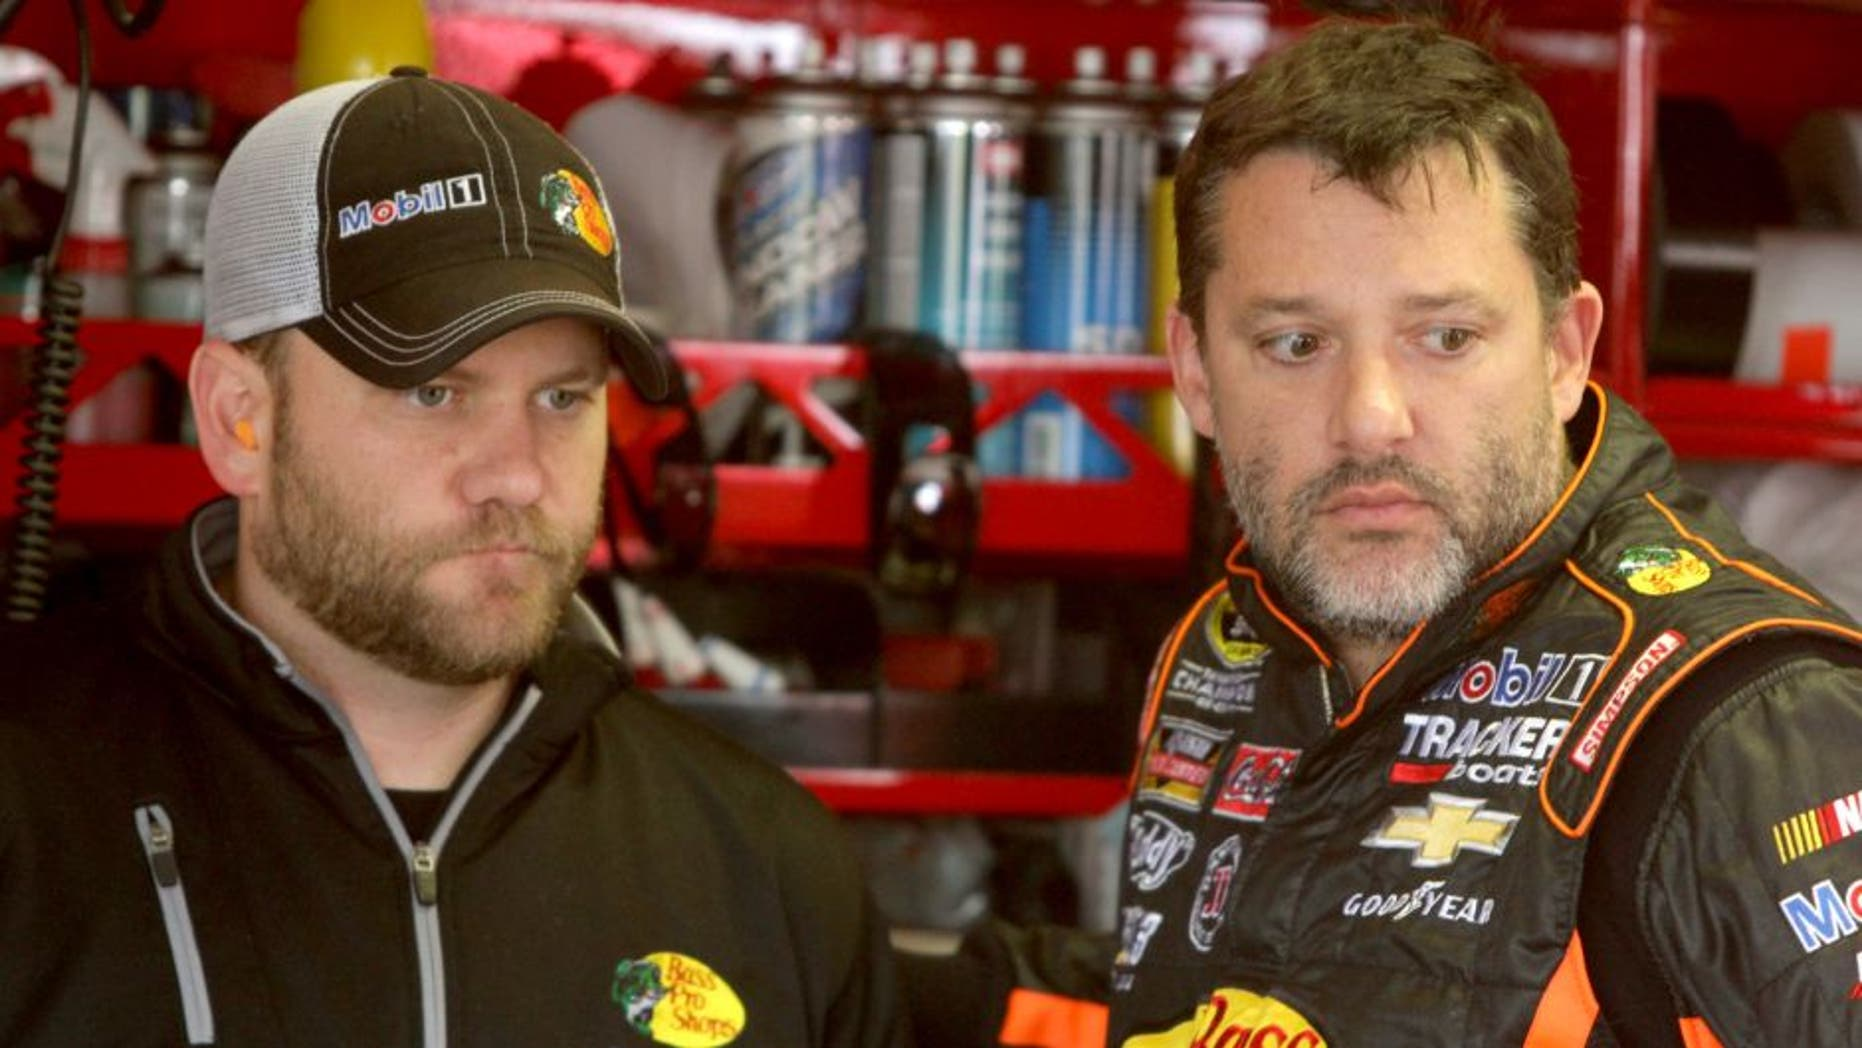 Tony Stewart, driver of the #14 Mobil 1/Bass Pro Shops Chevrolet, speaks with his crew chief Chad Johnston during practice for the NASCAR Sprint Cup Series Bojangles' Southern 500 at Darlington Raceway on April 11, 2014 in Darlington, South Carolina. (Photo by Jerry Markland/Getty Images)